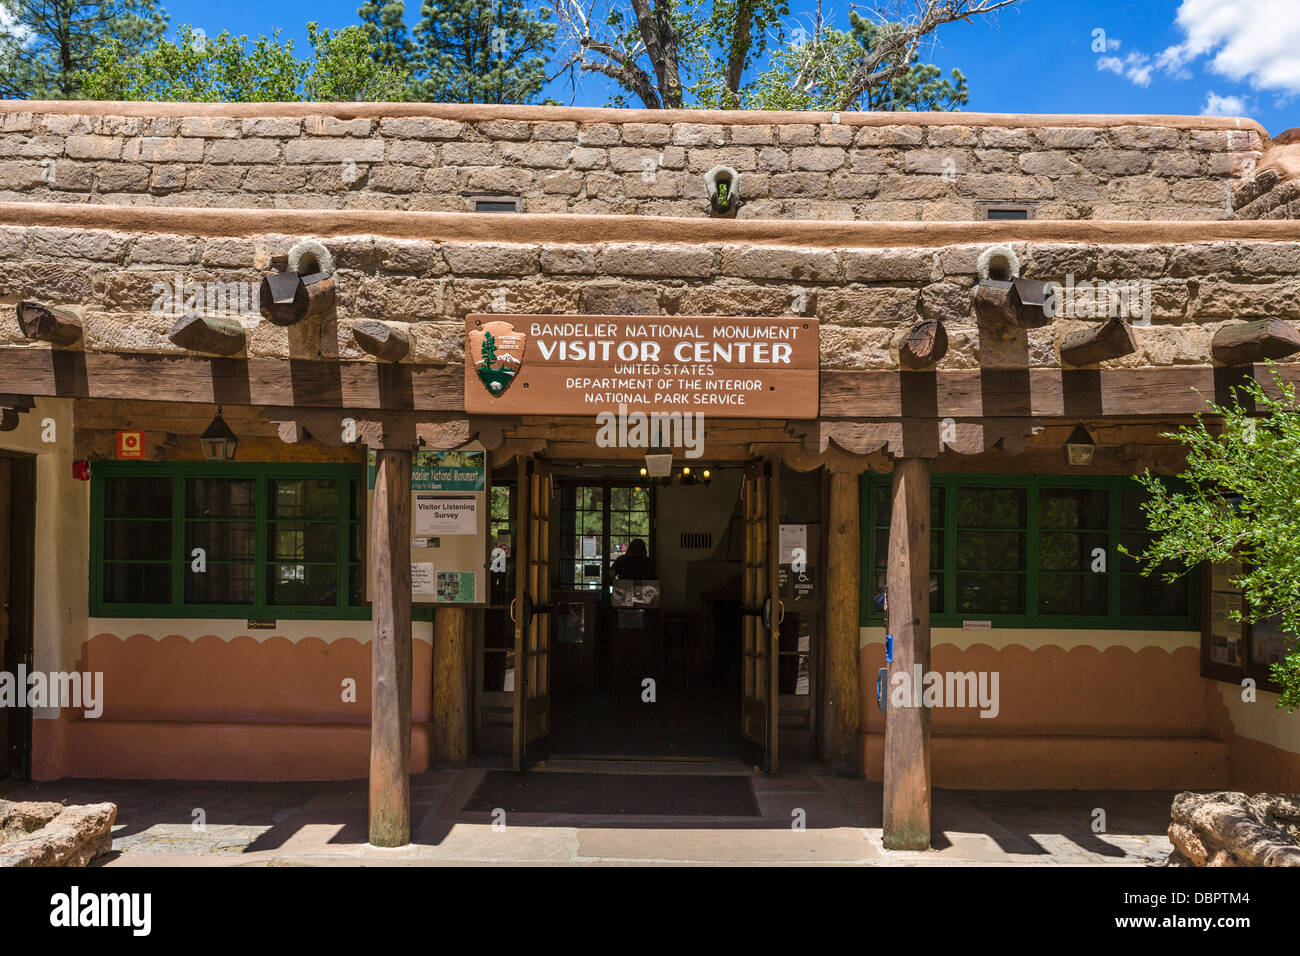 Visitor Center at Bandelier National, Monument, near Los Alamos, New Mexico, USA - Stock Image